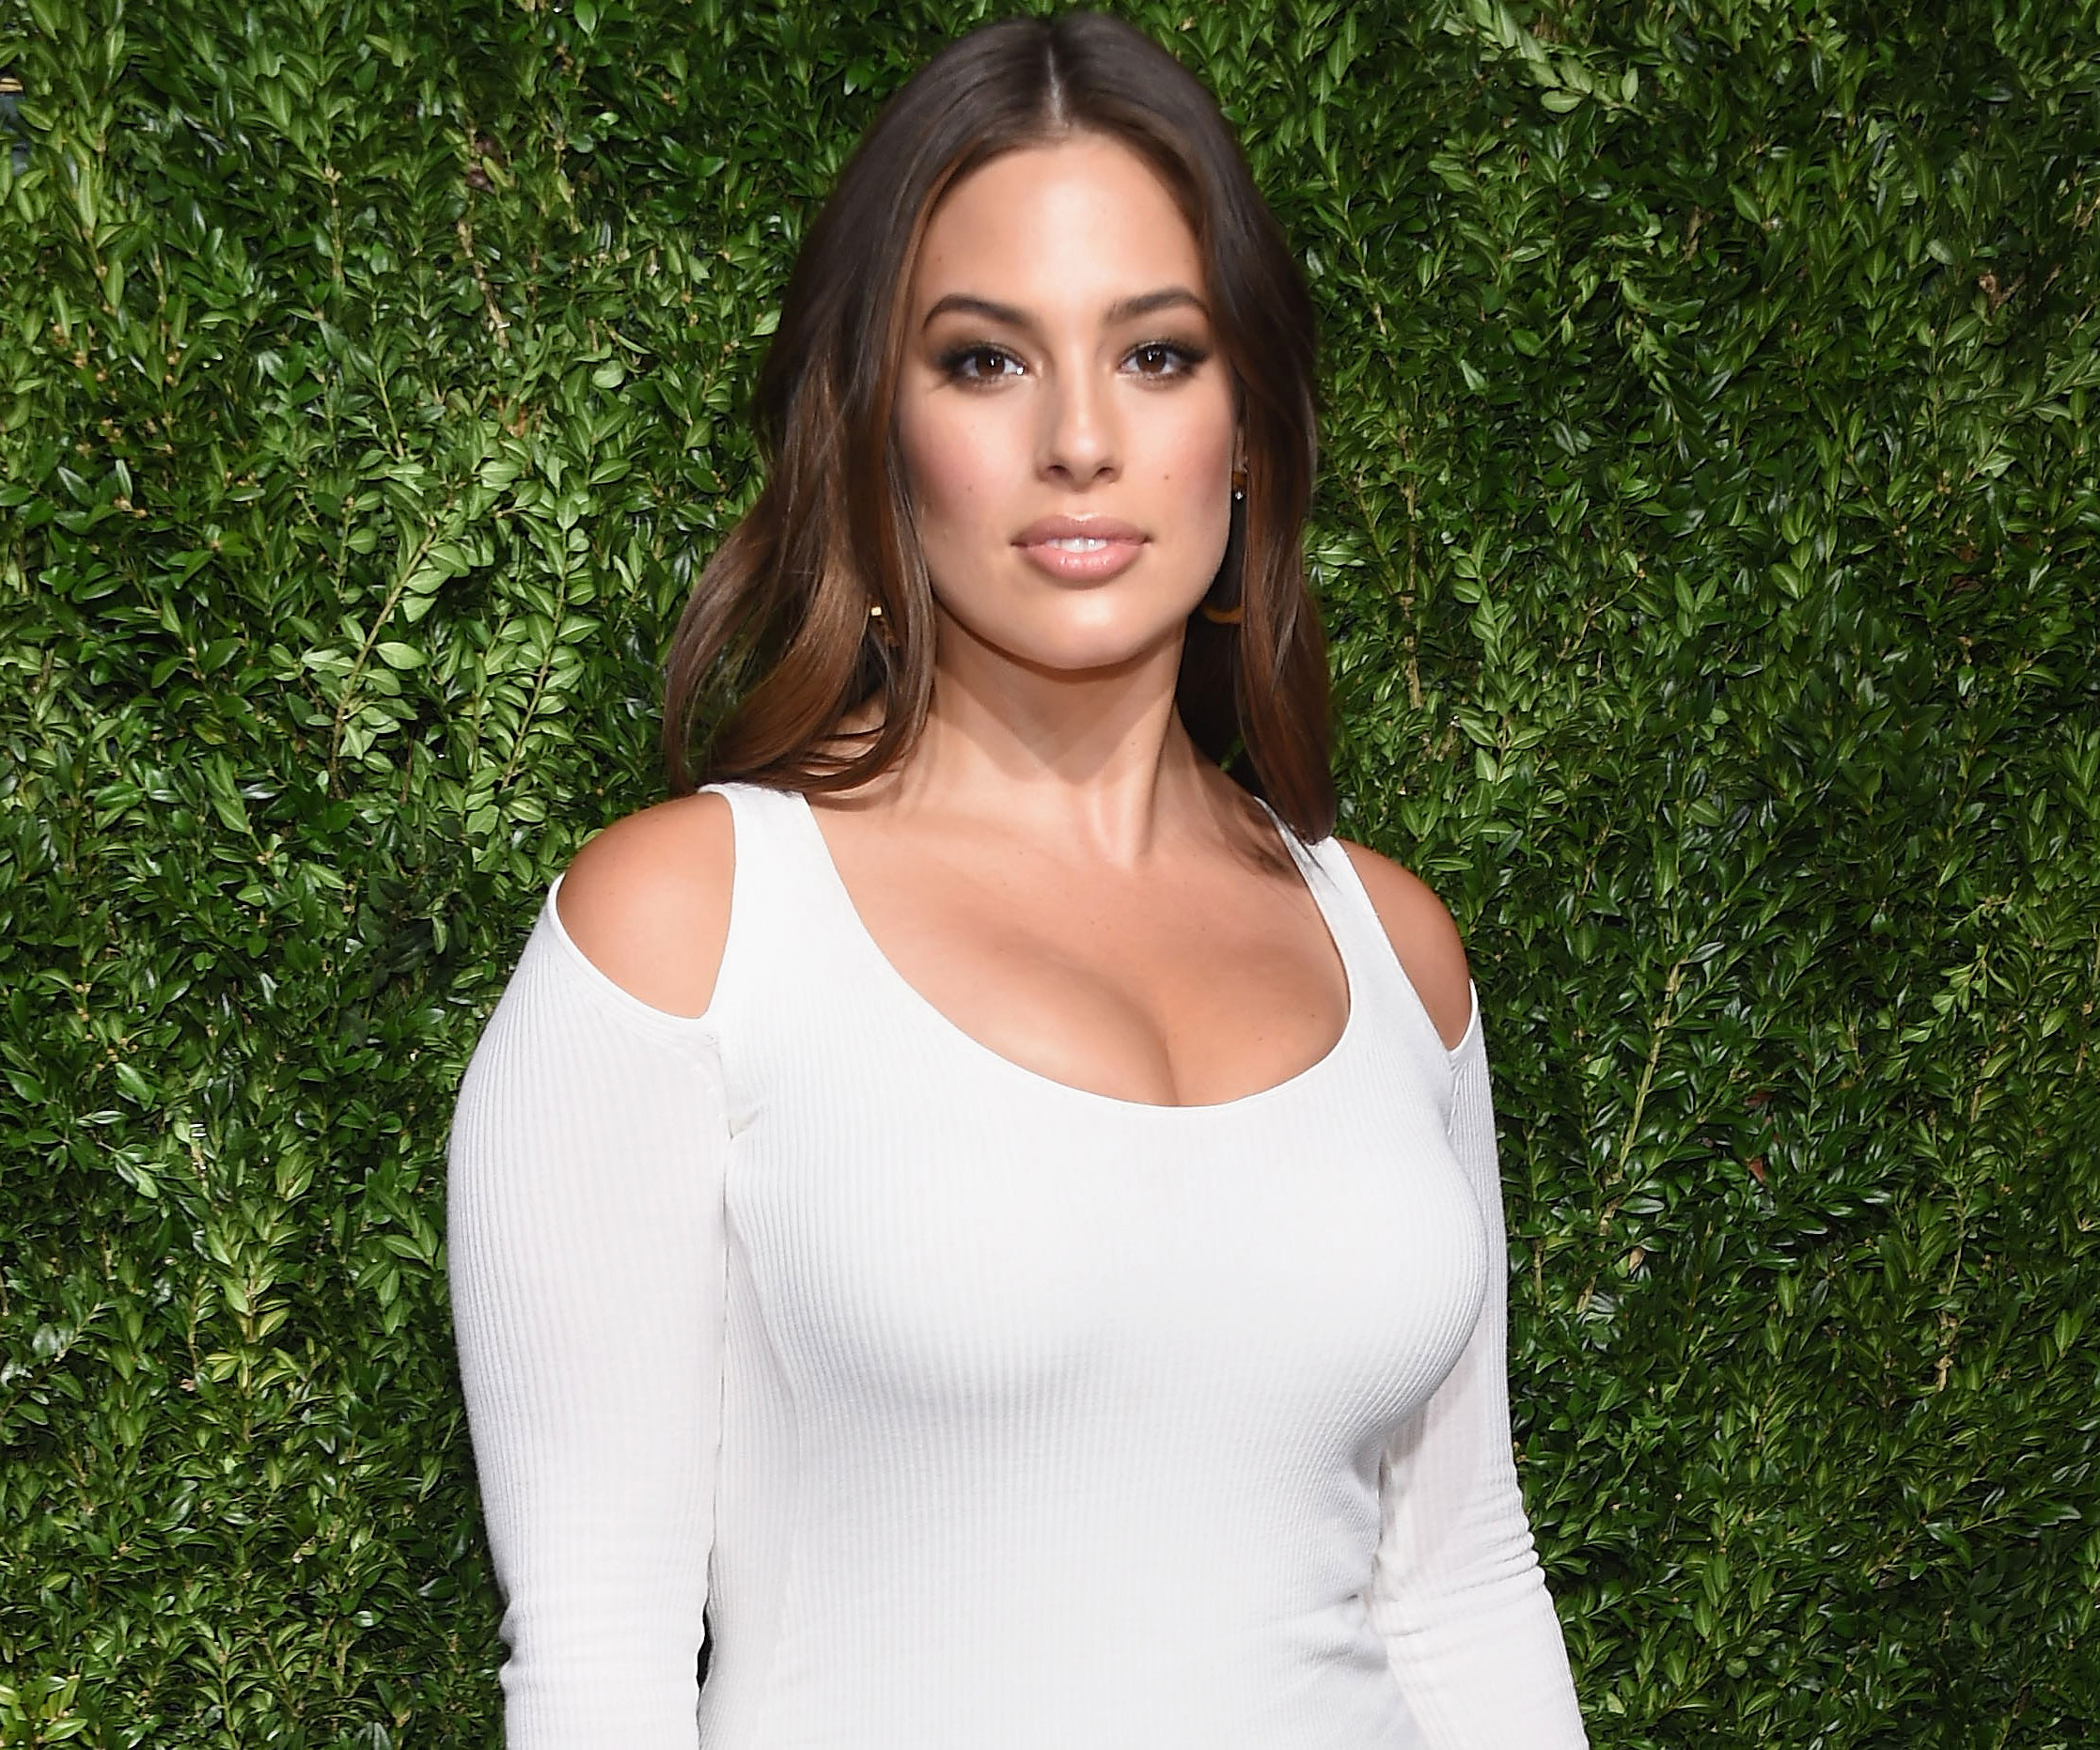 Ashley Graham's latest campaign features untouched paparazzi photos. Slay